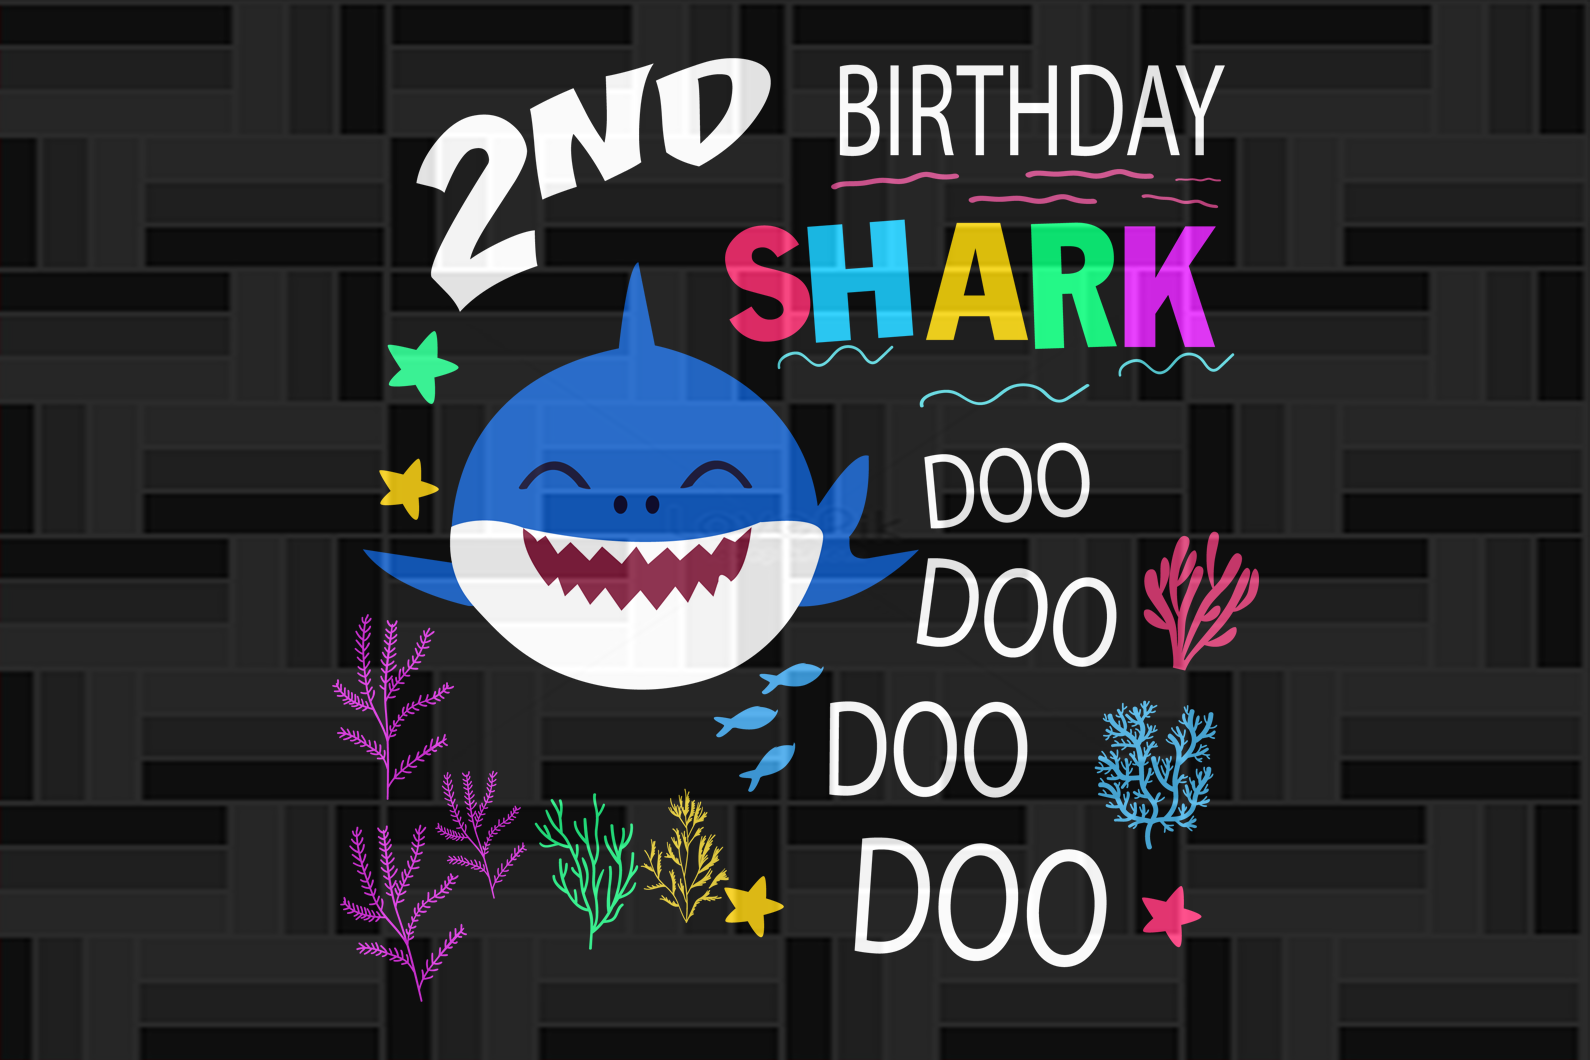 2nd birthday shark doo, born in 2018, 2017 svg, 2nd birthday svg, 2nd birthday gift, 2nd birthday shirt, birthday anniversary, birthday party, shark svg, shark silhouette, cute shark, gift for kids, gift from parents, digital file, vinyl for cricut,